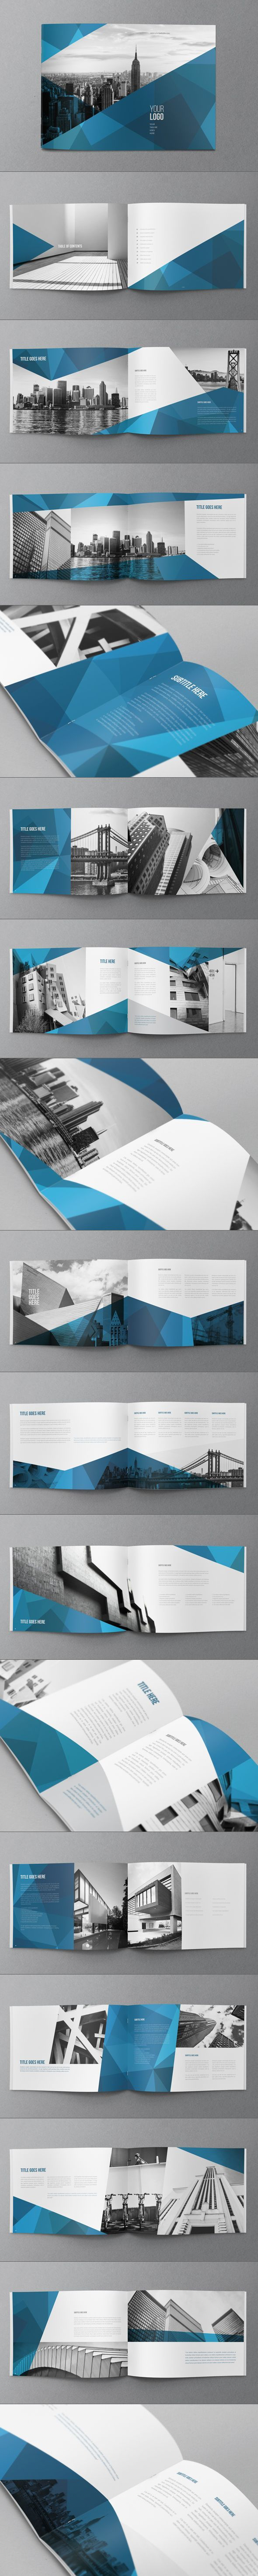 Abstract Architecture Brochure by Abra Design, via Behance